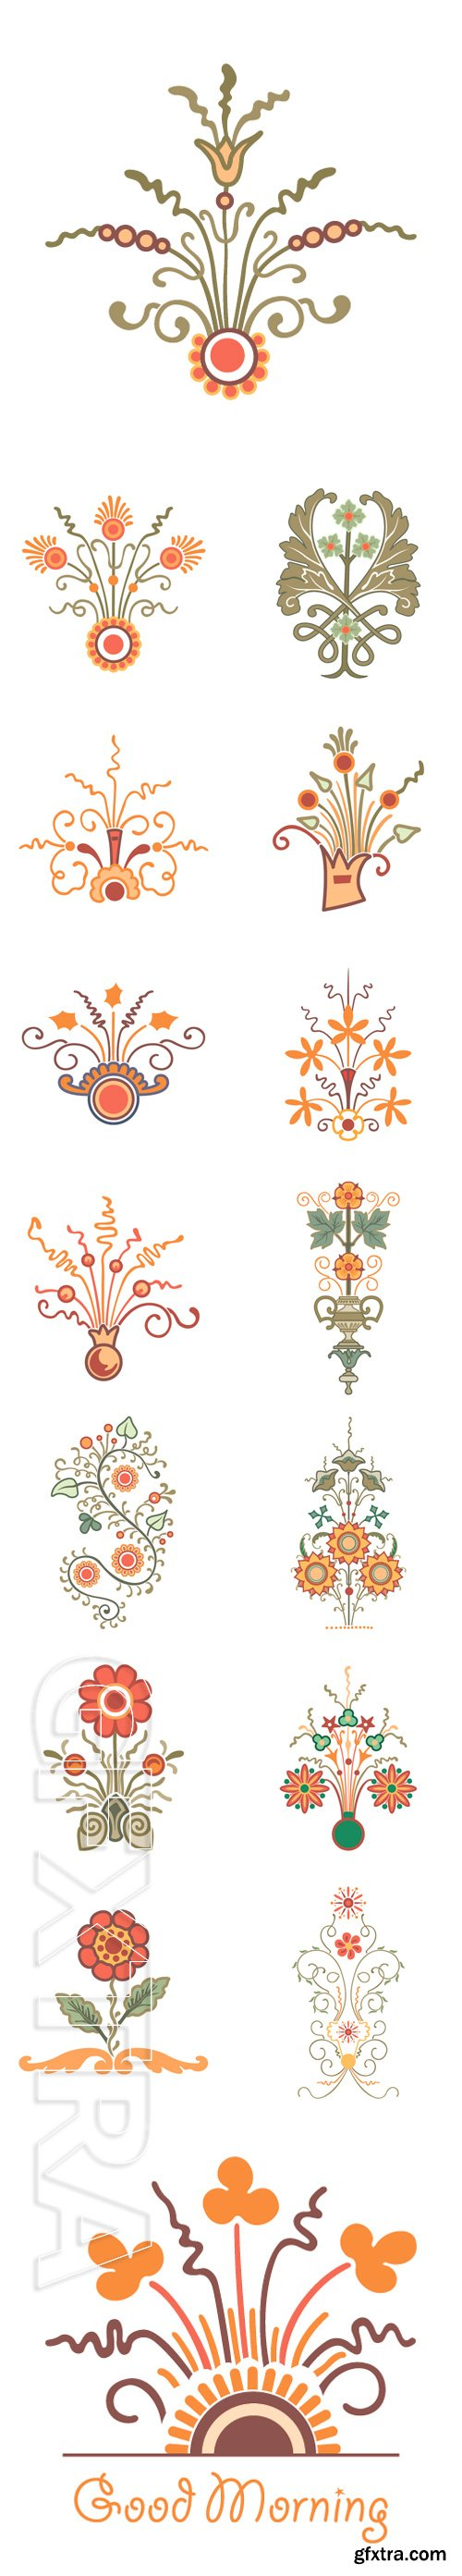 Stock Vectors - Freehand drawing, flowers and plants bouquet, classical